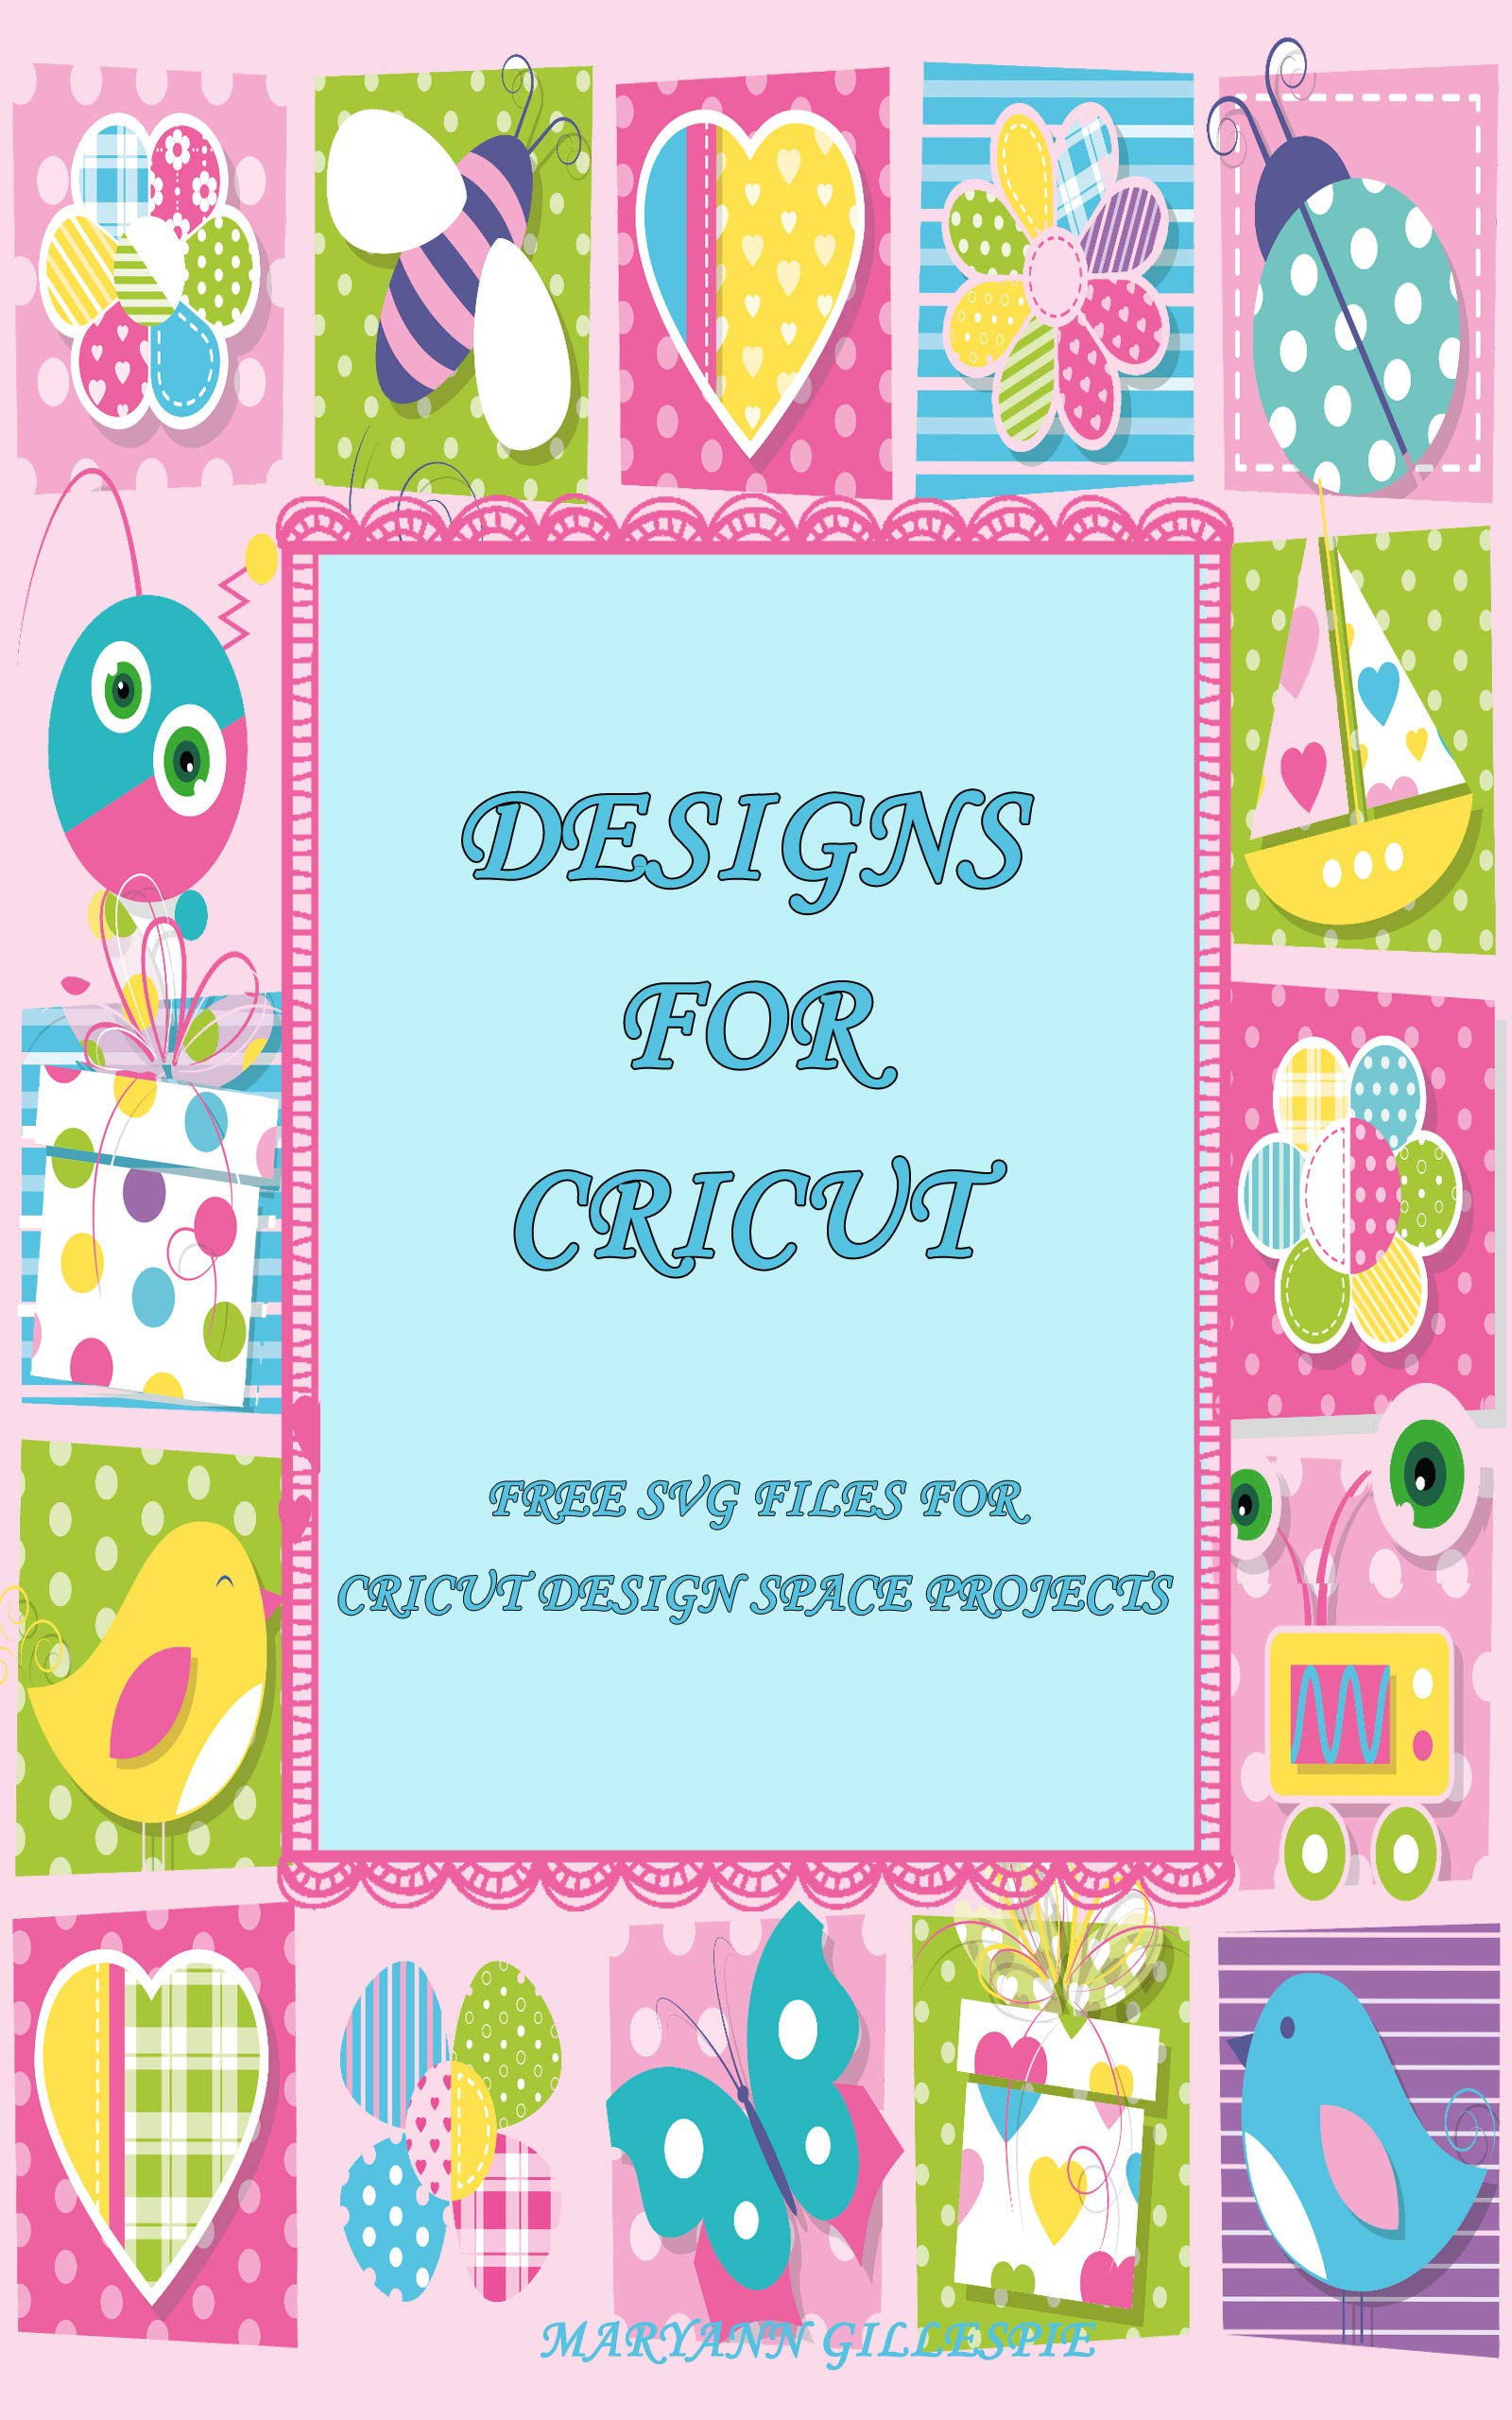 Designs for Cricut: Free SVG Files for Cricut Design Space Projects (Cricut Crafting Ideas Book Book 1)